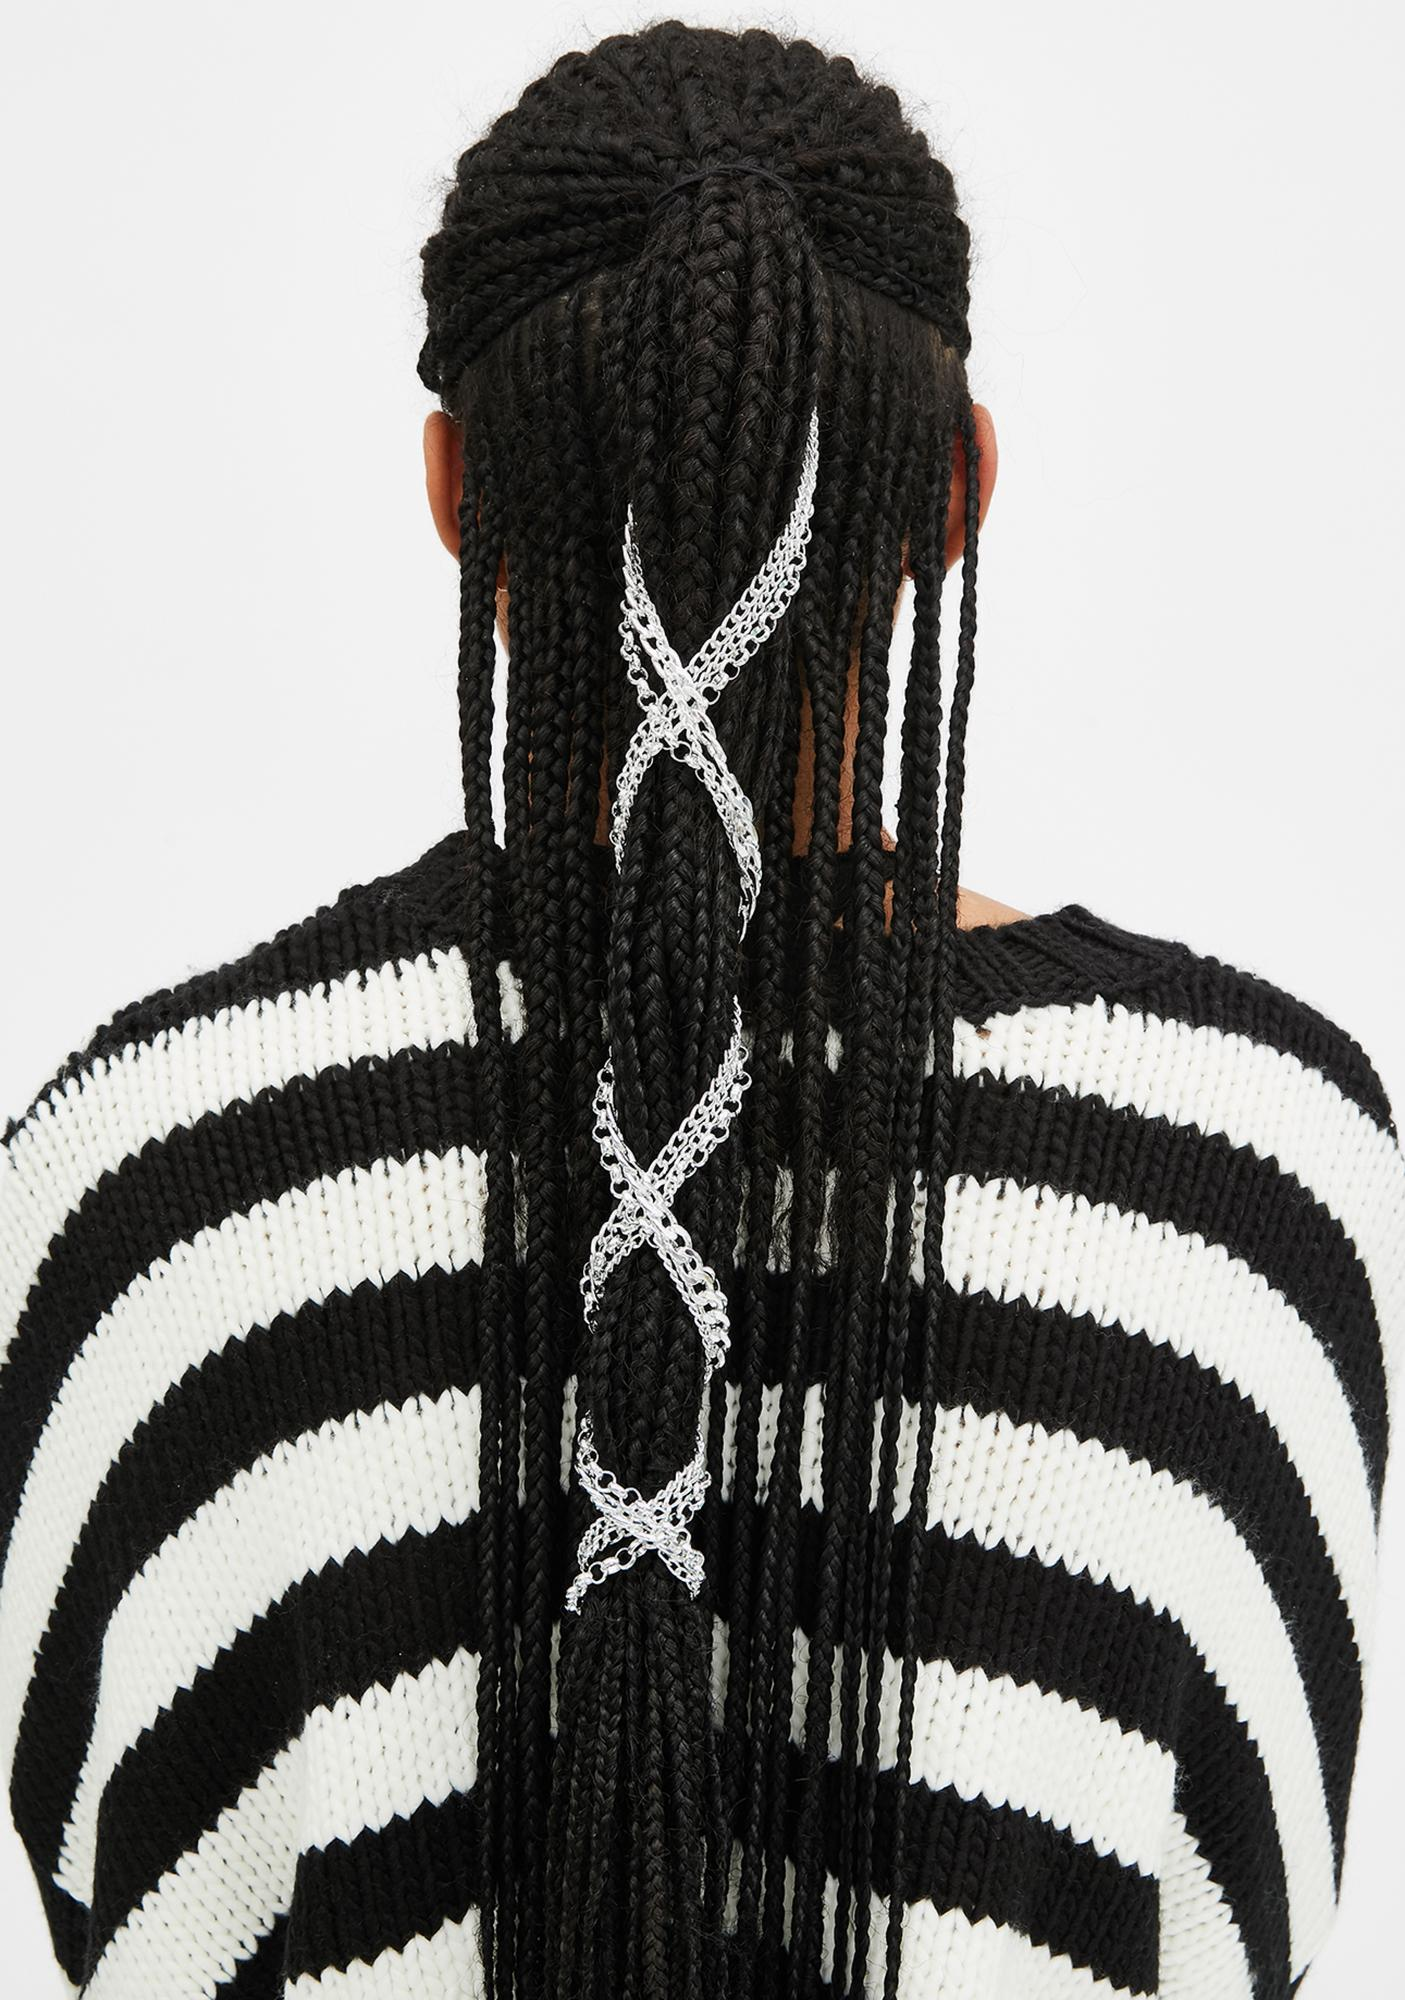 Chained Mane Hair Extensions